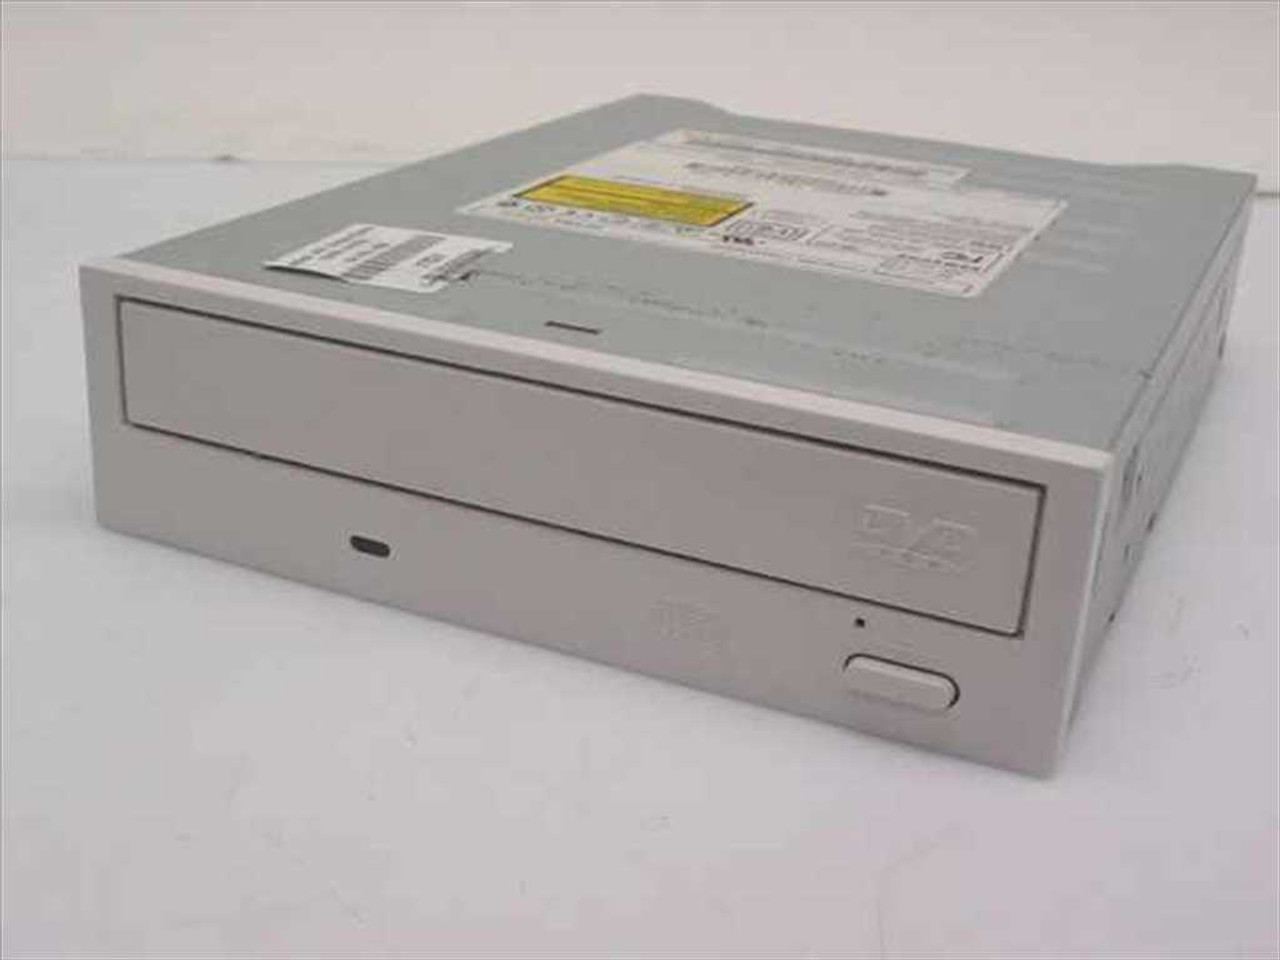 DVD SD-612B DRIVER FOR MAC